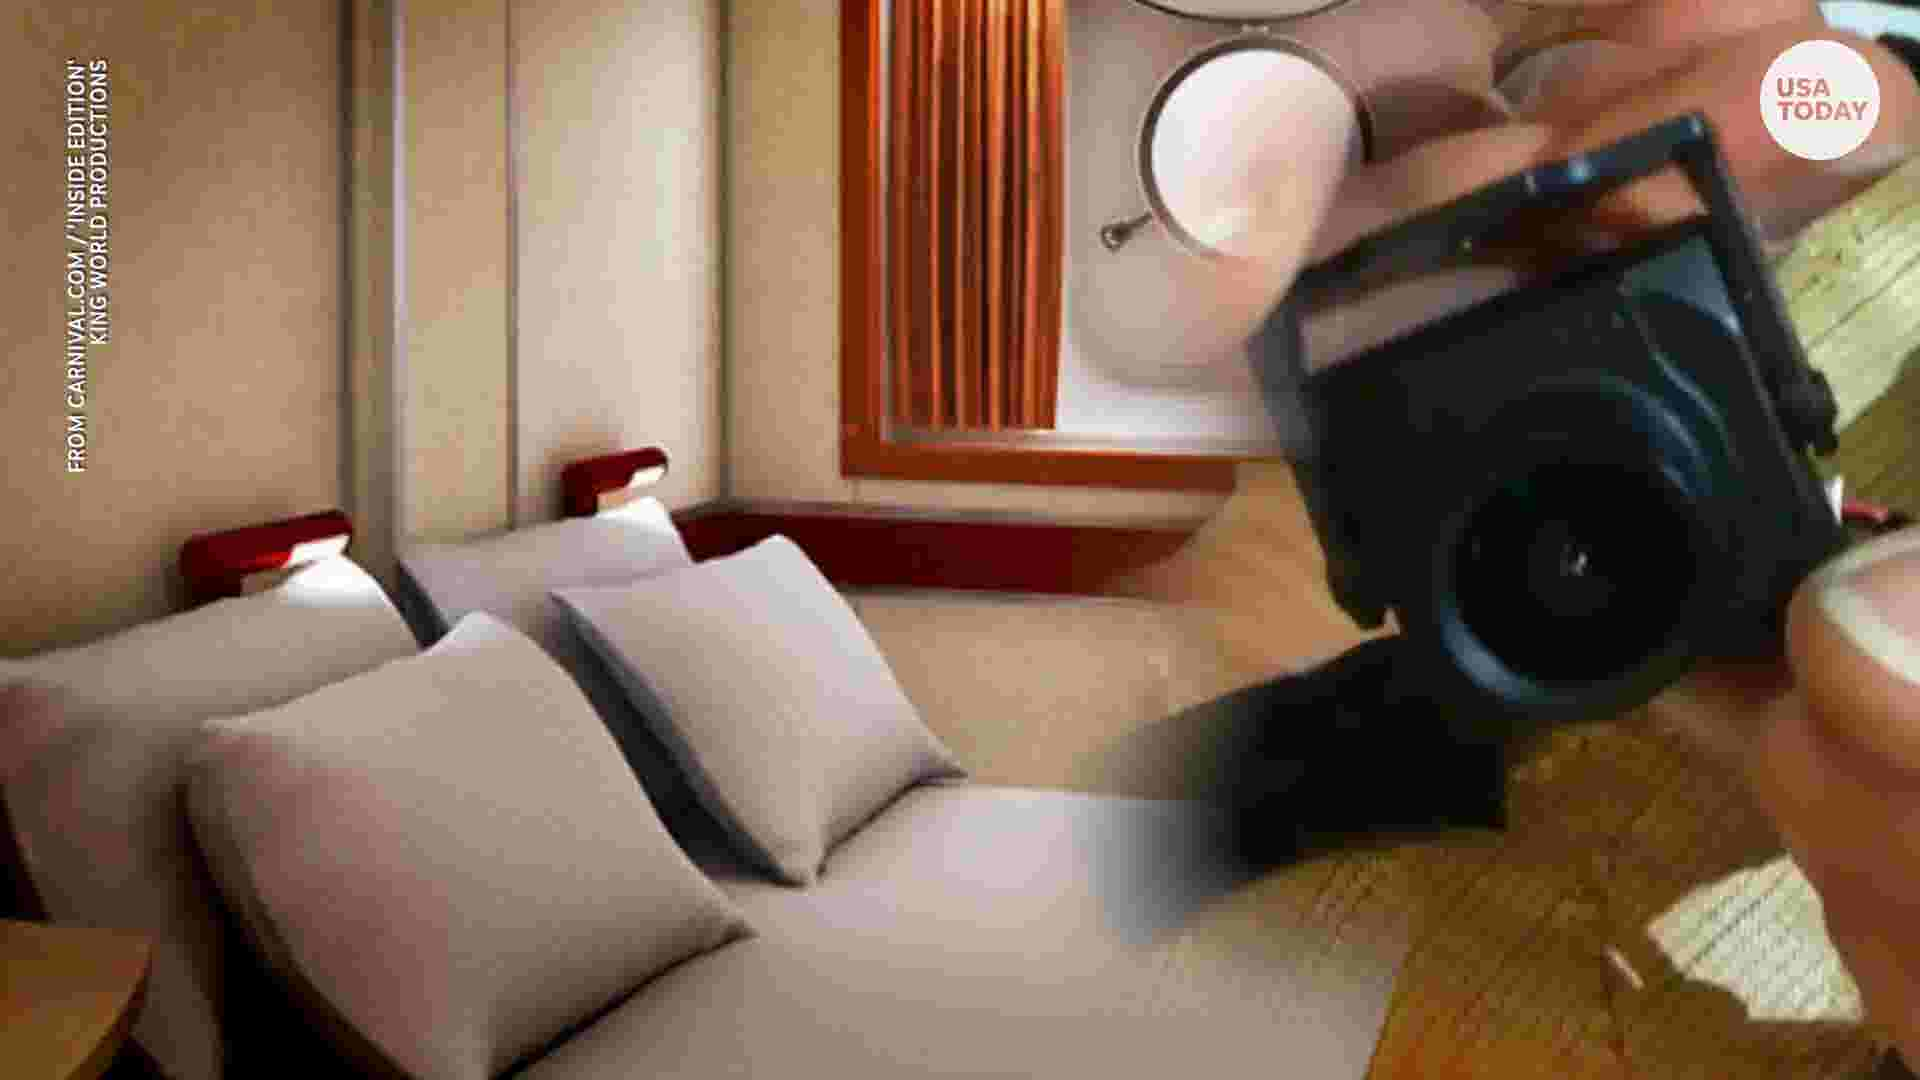 Couple Found Hidden Camera In Their Carnival Cruise Bedroom Our Privacy Had Been Invaded